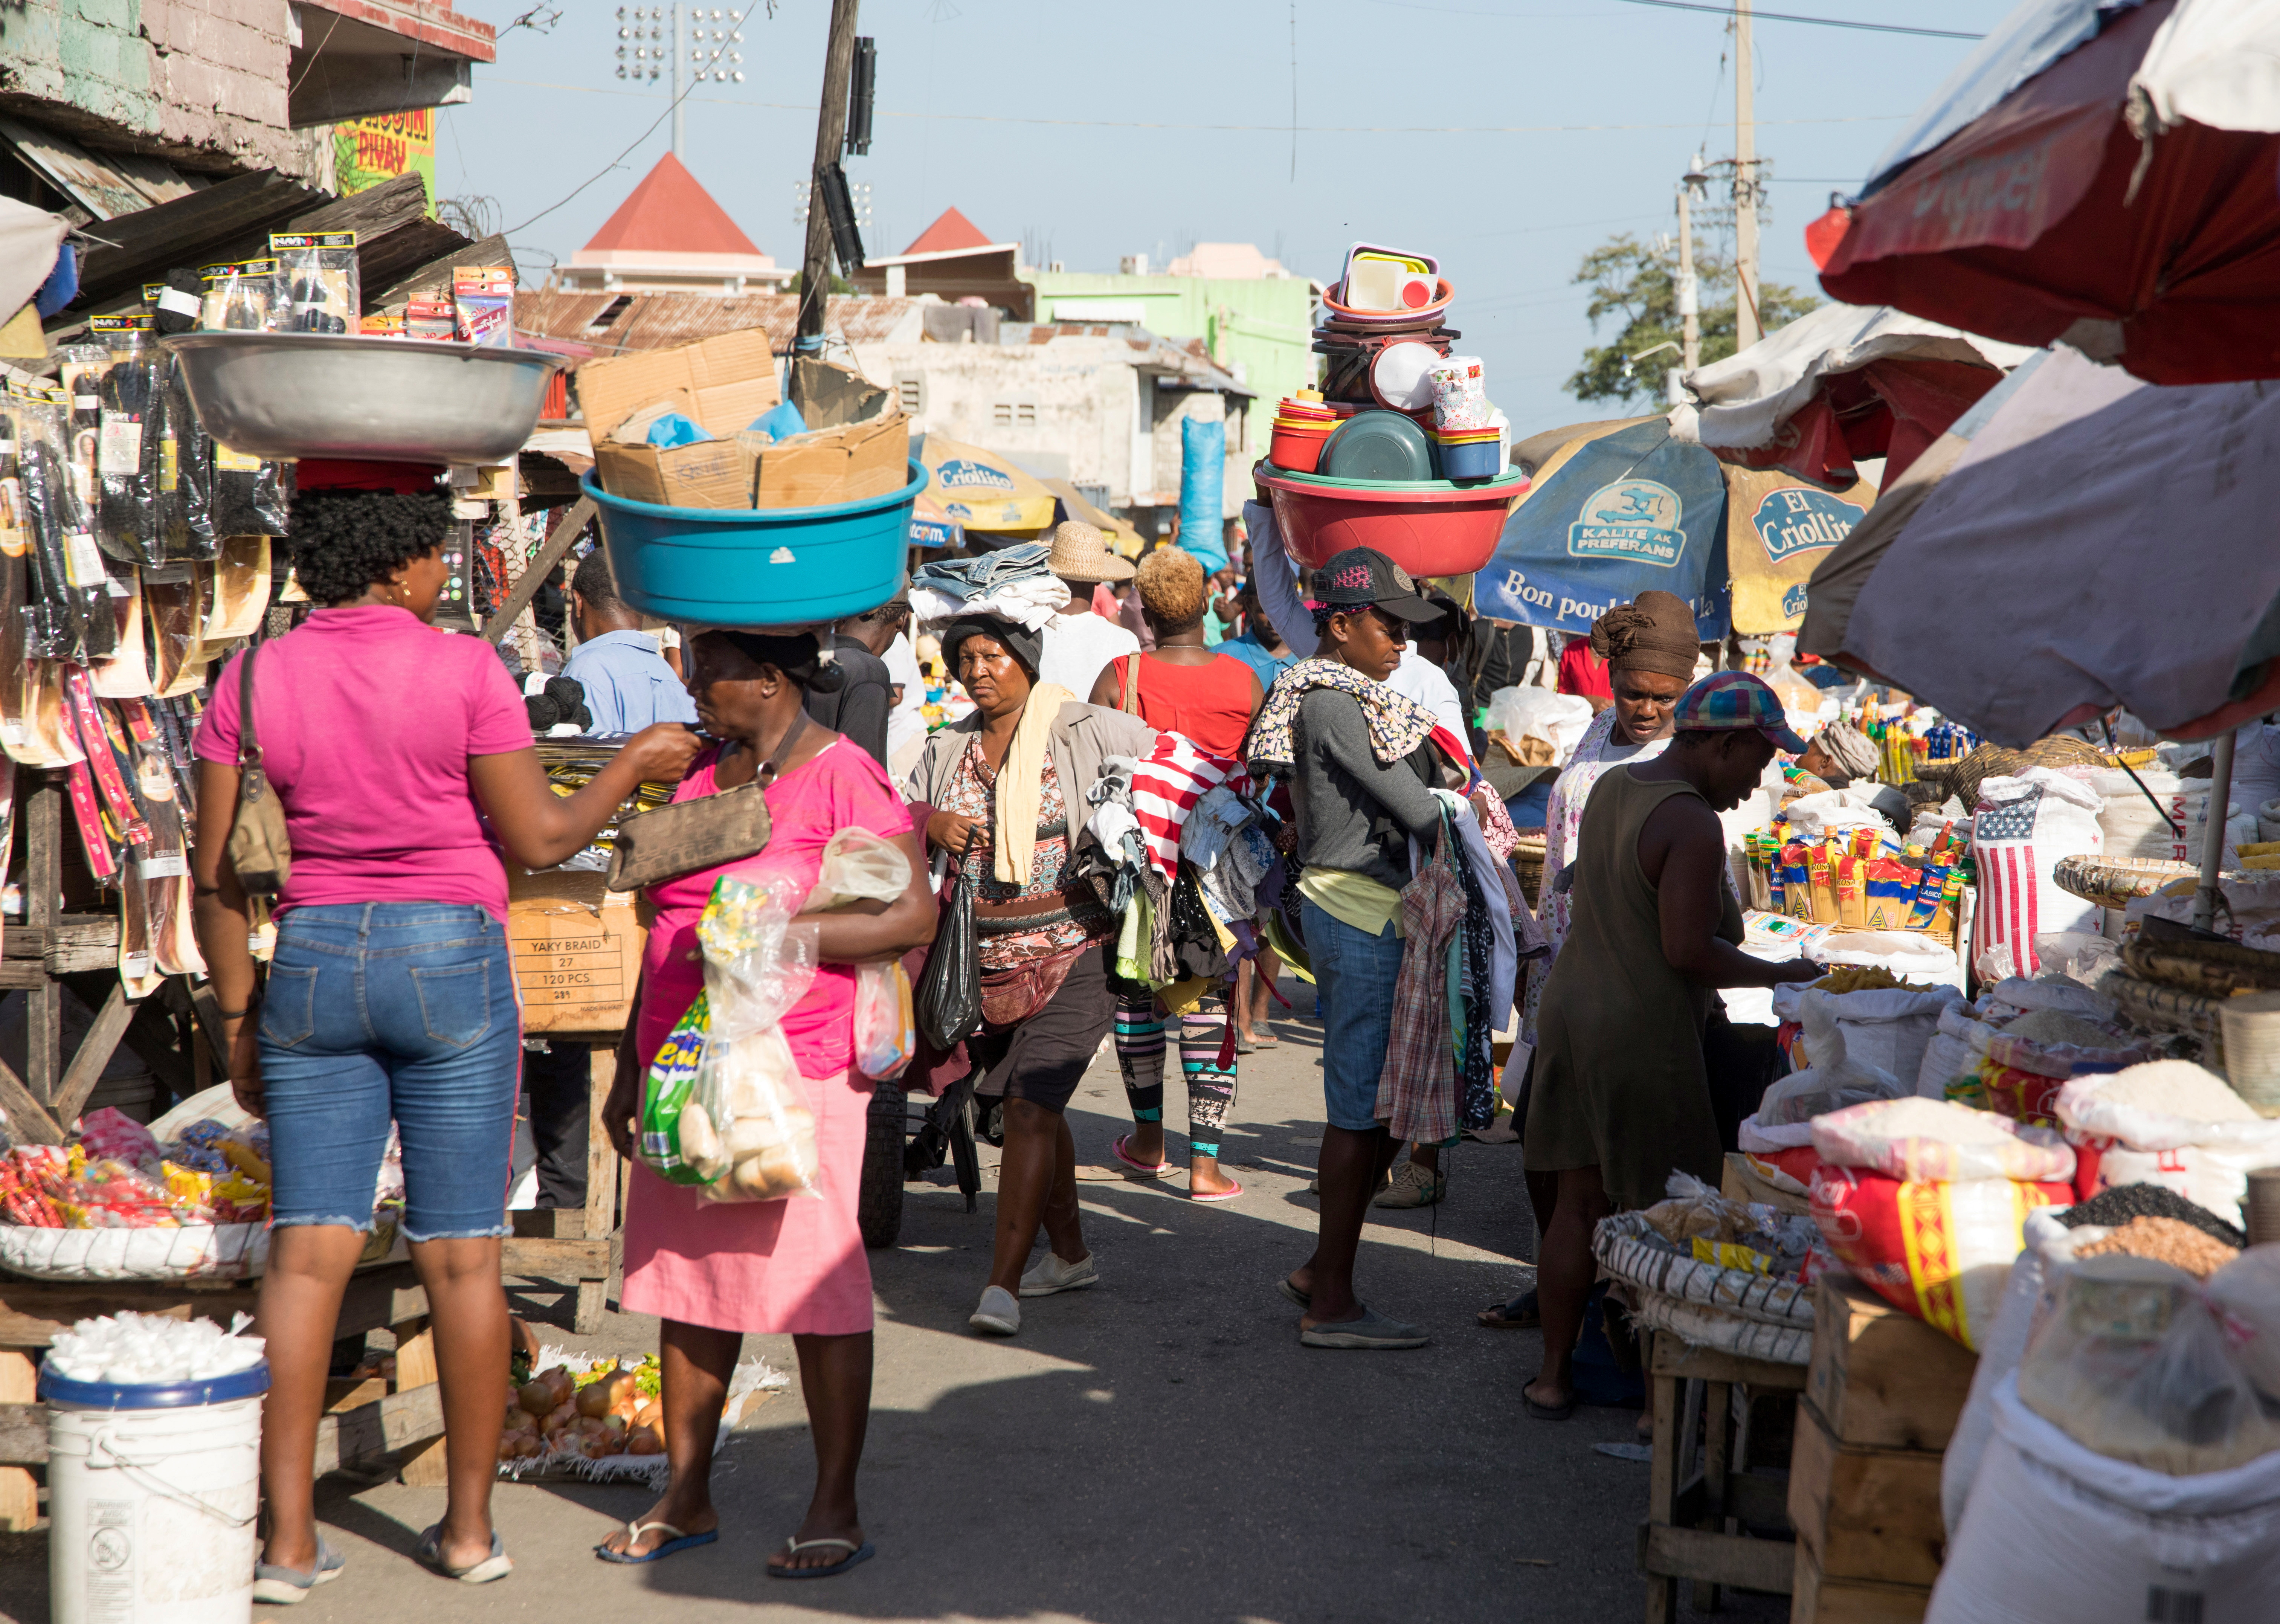 People walk in a market as they go about their lives in Port-au-Prince, Haiti, May 24, 2021. REUTERS/Valerie Baeriswyl